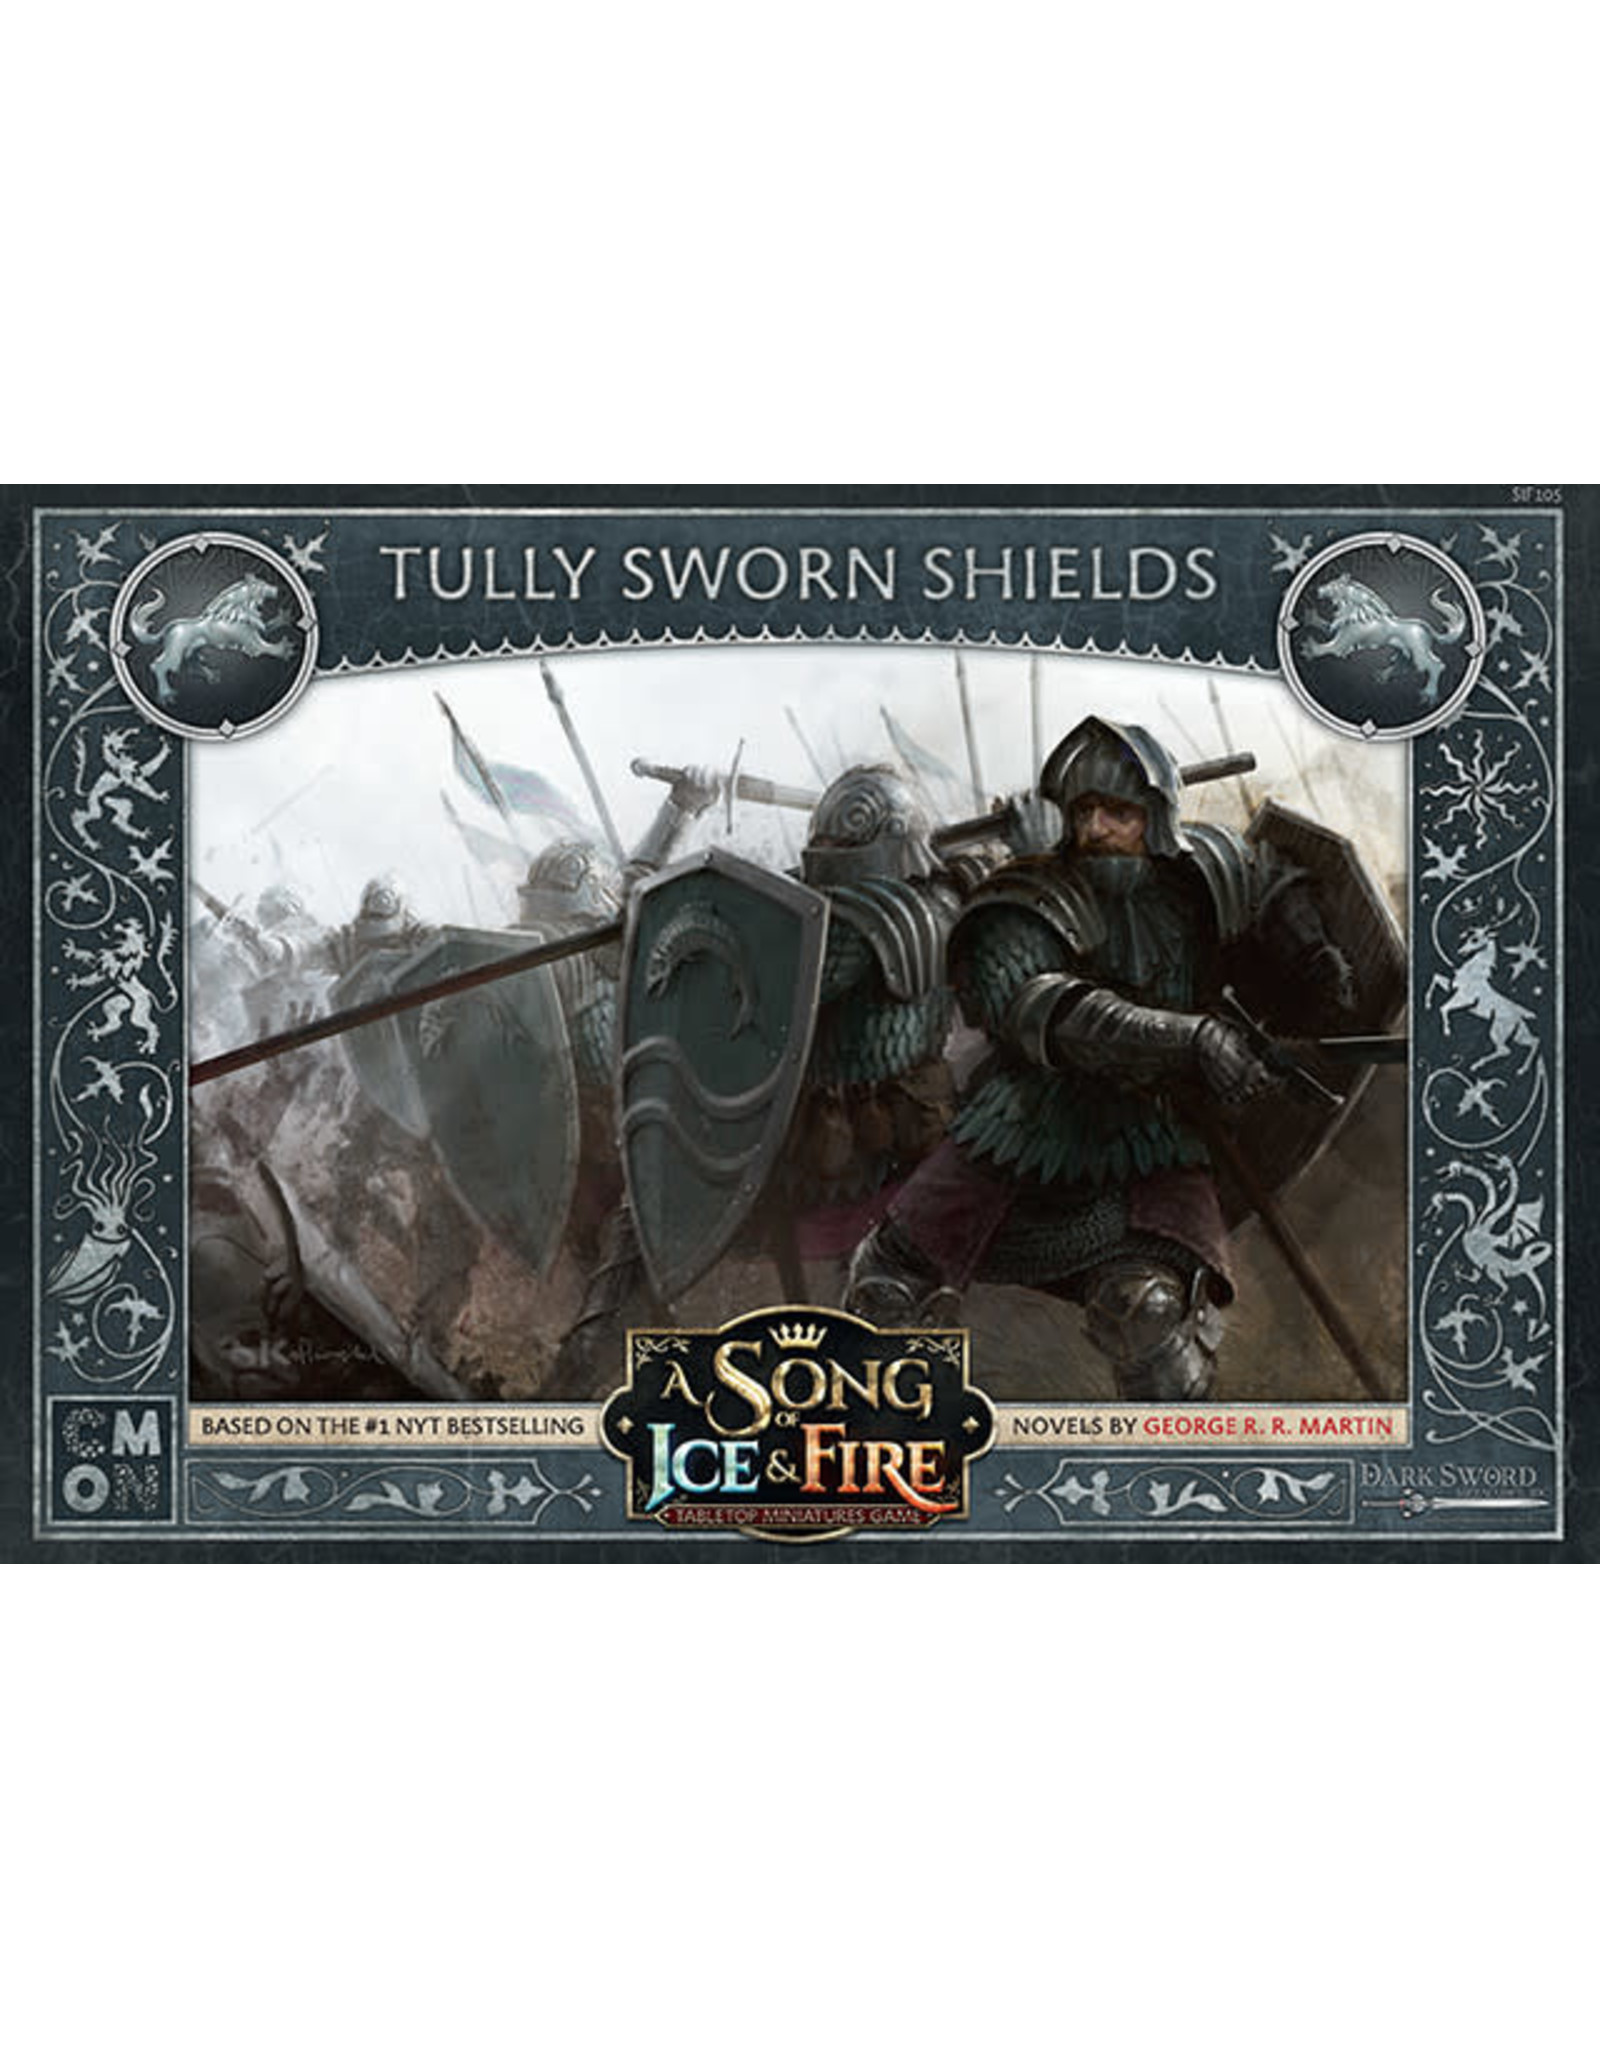 CMON A SONG OF ICE & FIRE: TULLY SWORN SHIELDS